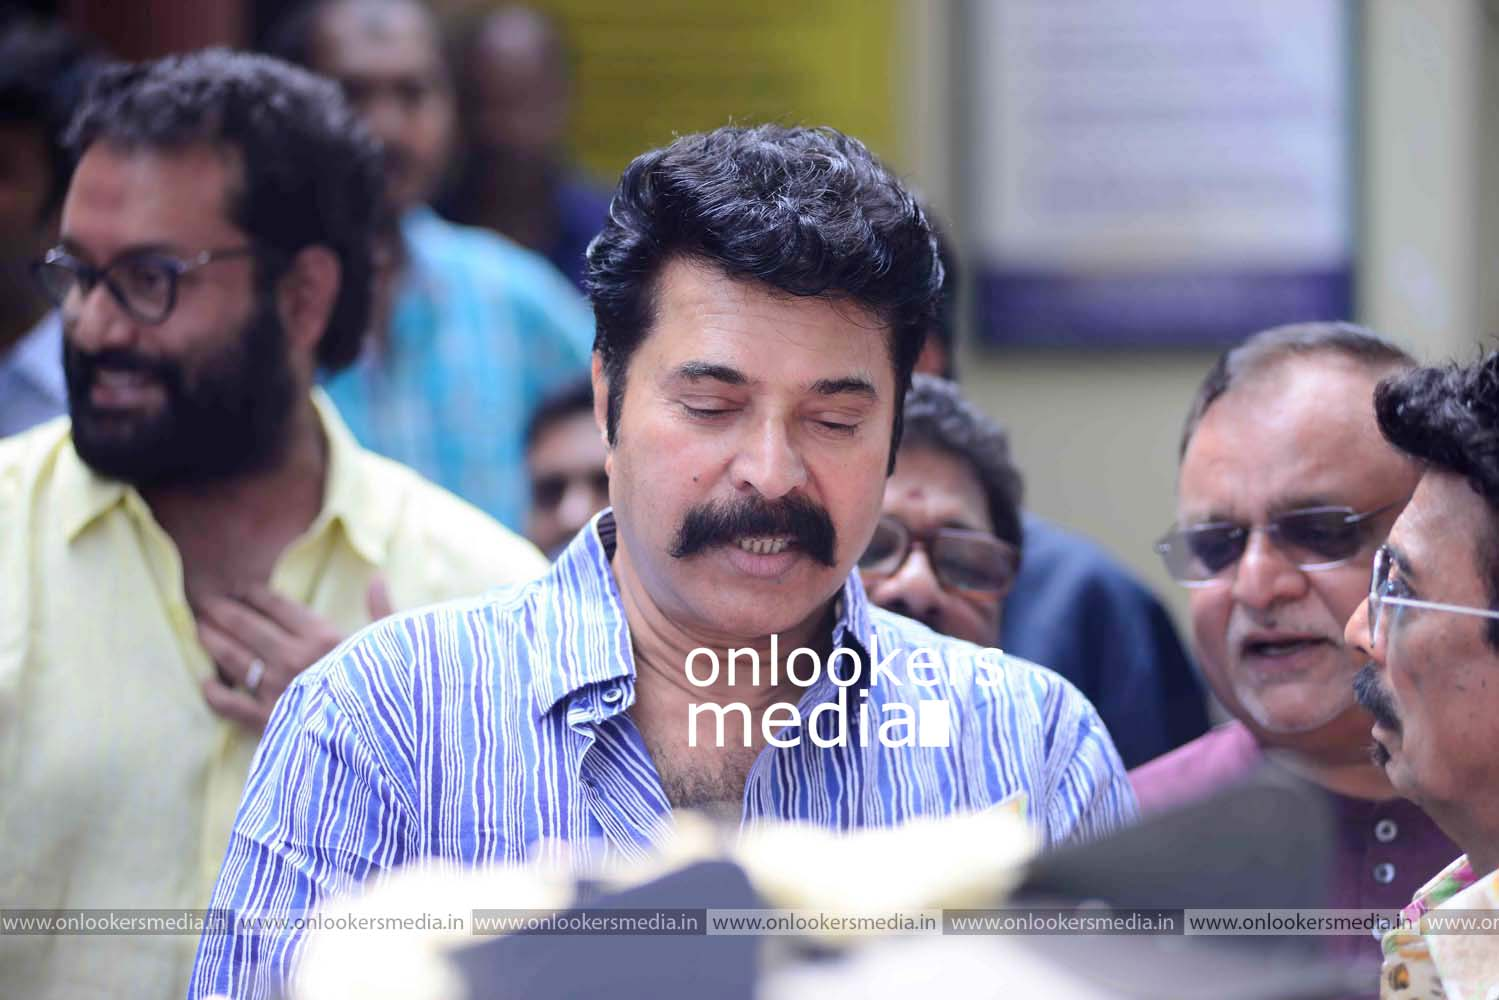 http://onlookersmedia.in/wp-content/uploads/2016/11/Puthan-Panam-Pooja-Stills-Photos-Mammootty-Ranjith-3.jpg